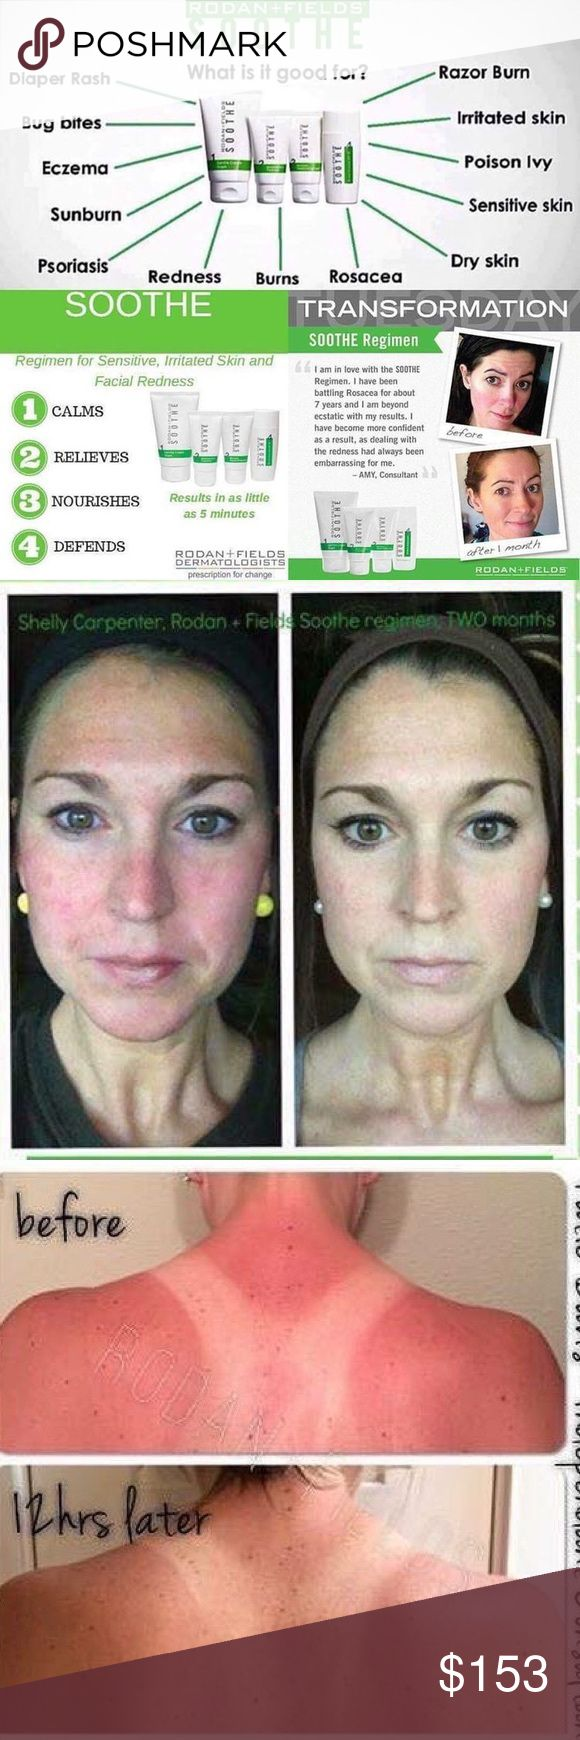 Rodan and Fields Soothe Regimen Sensitive skin? Rosacea? Eczema? Rodan and Fields soothe is for you! This ultra gentle regimen calms and soothes the skin to help you get the healthiest skin of your life! New with seals on all bottles Makeup